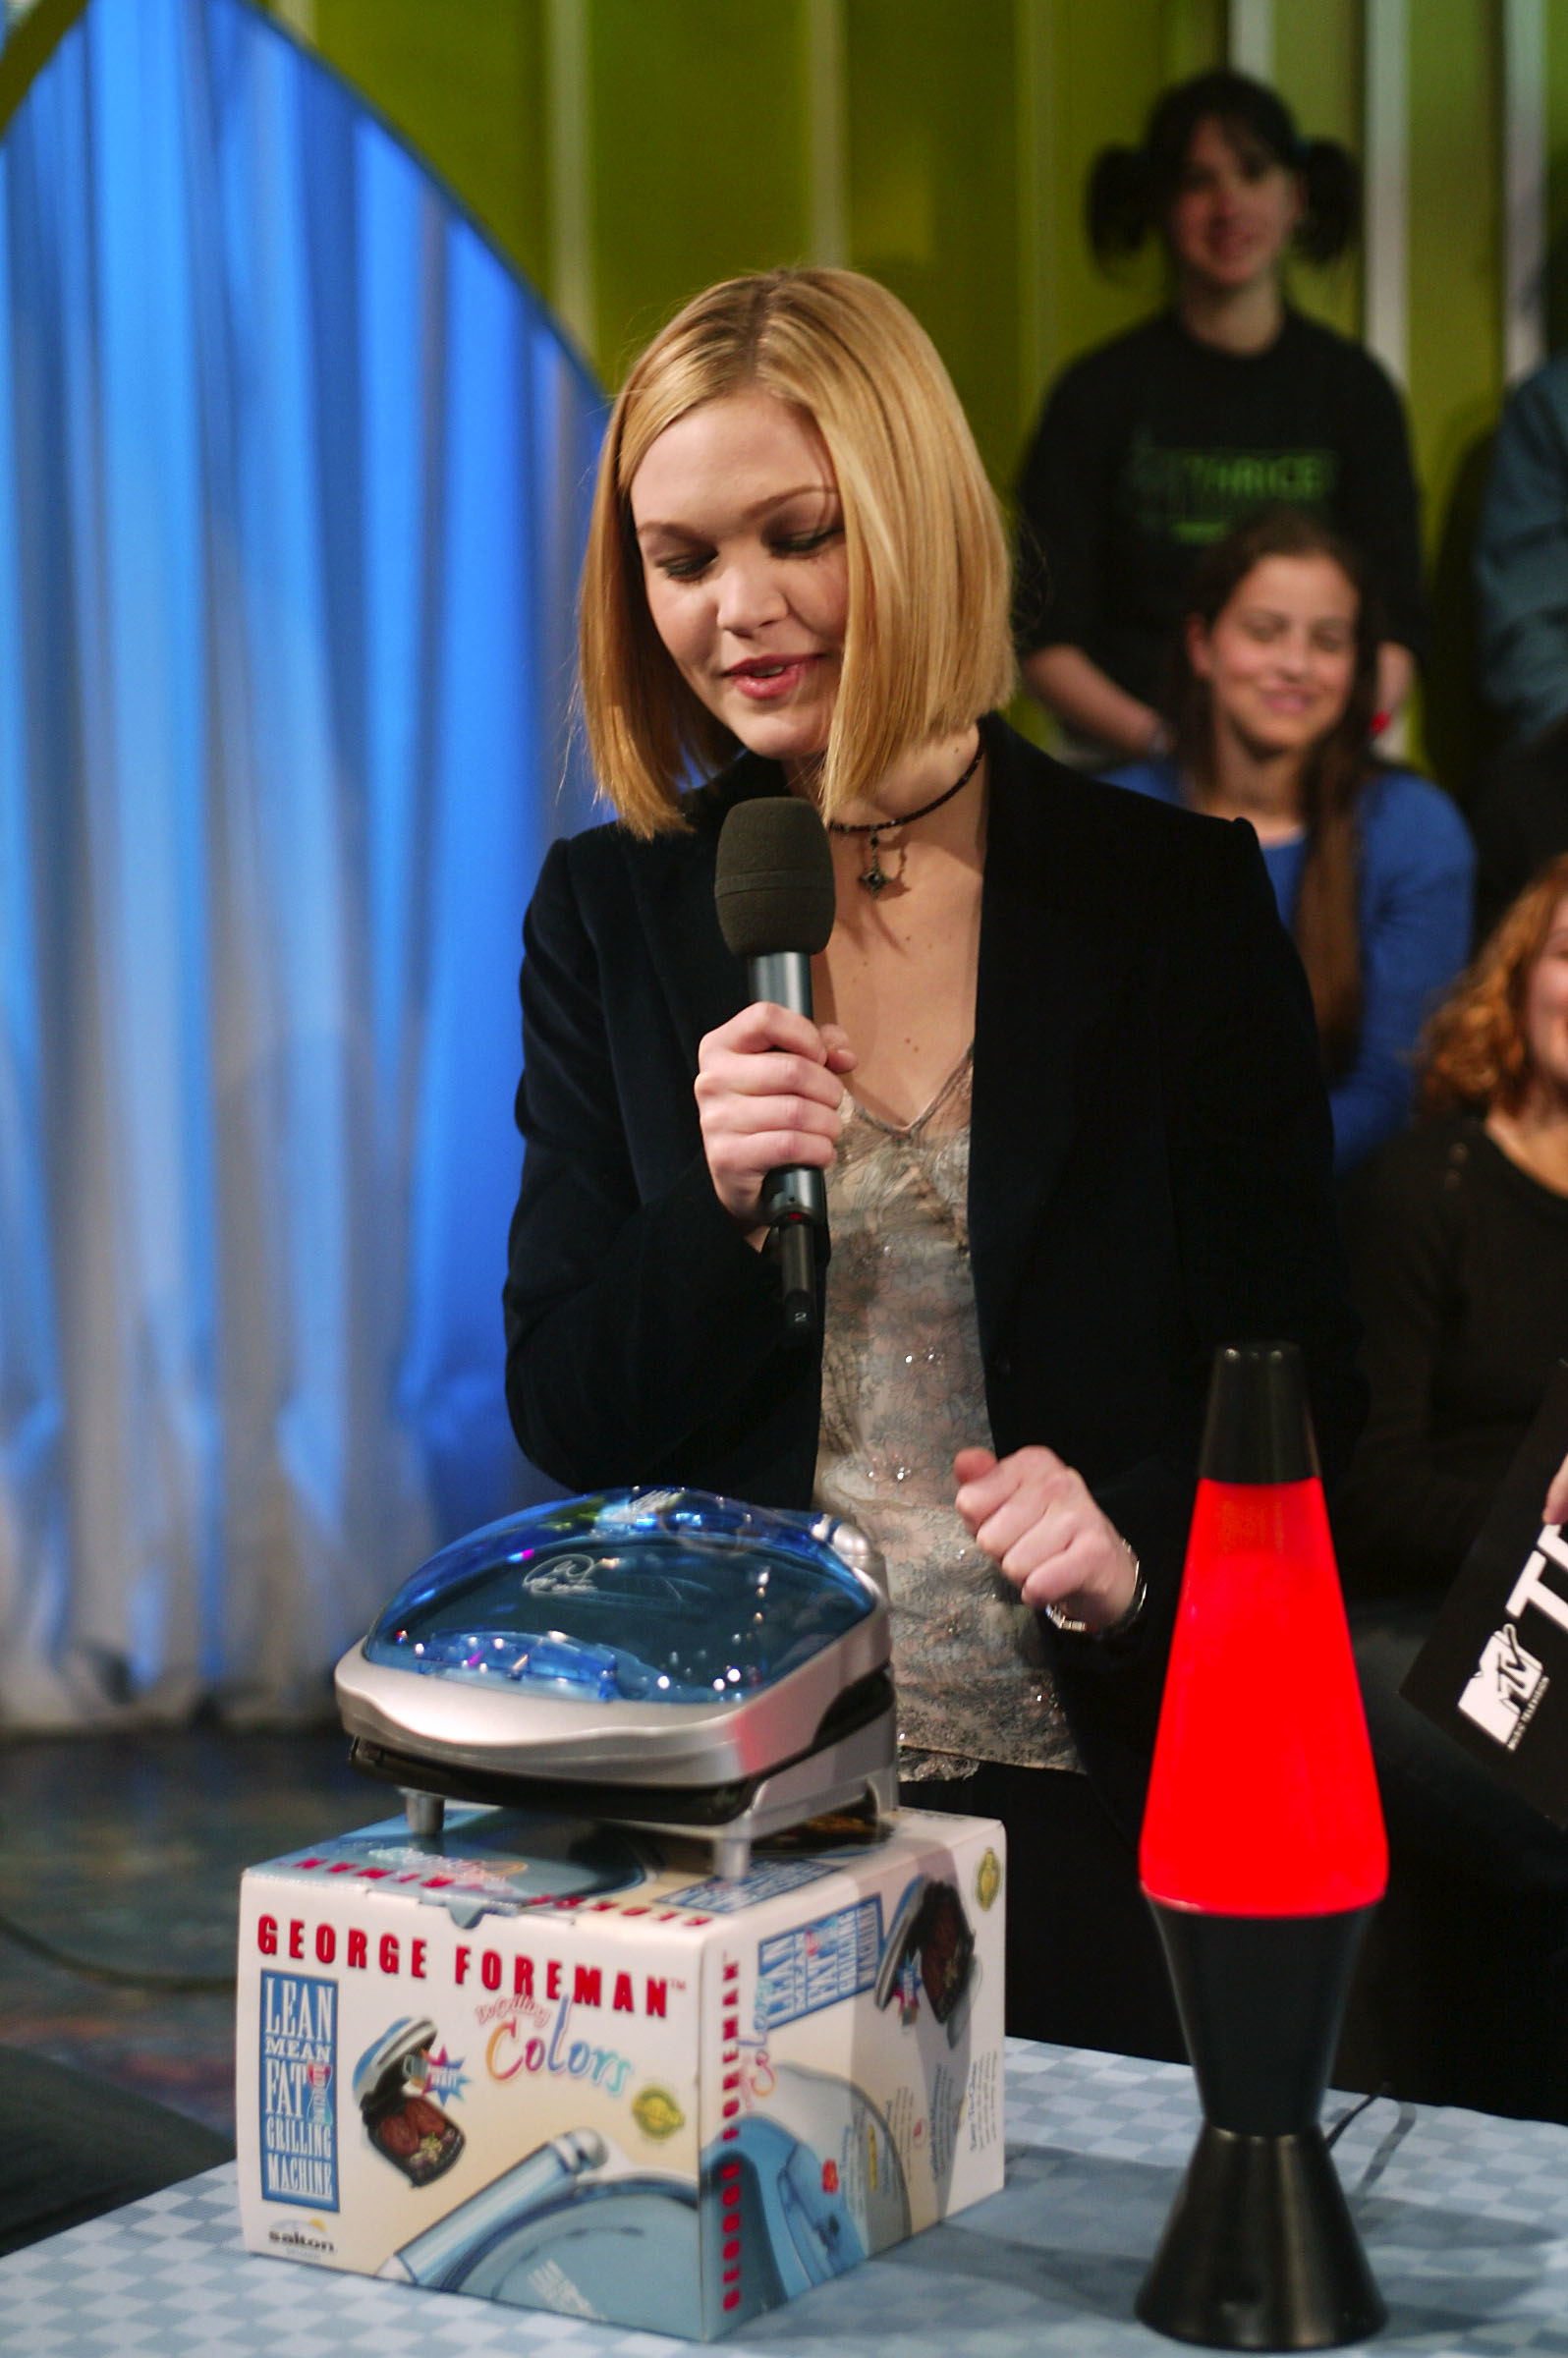 Julia Styles showing off the latest lava lamps and a new George Foreman Grill.